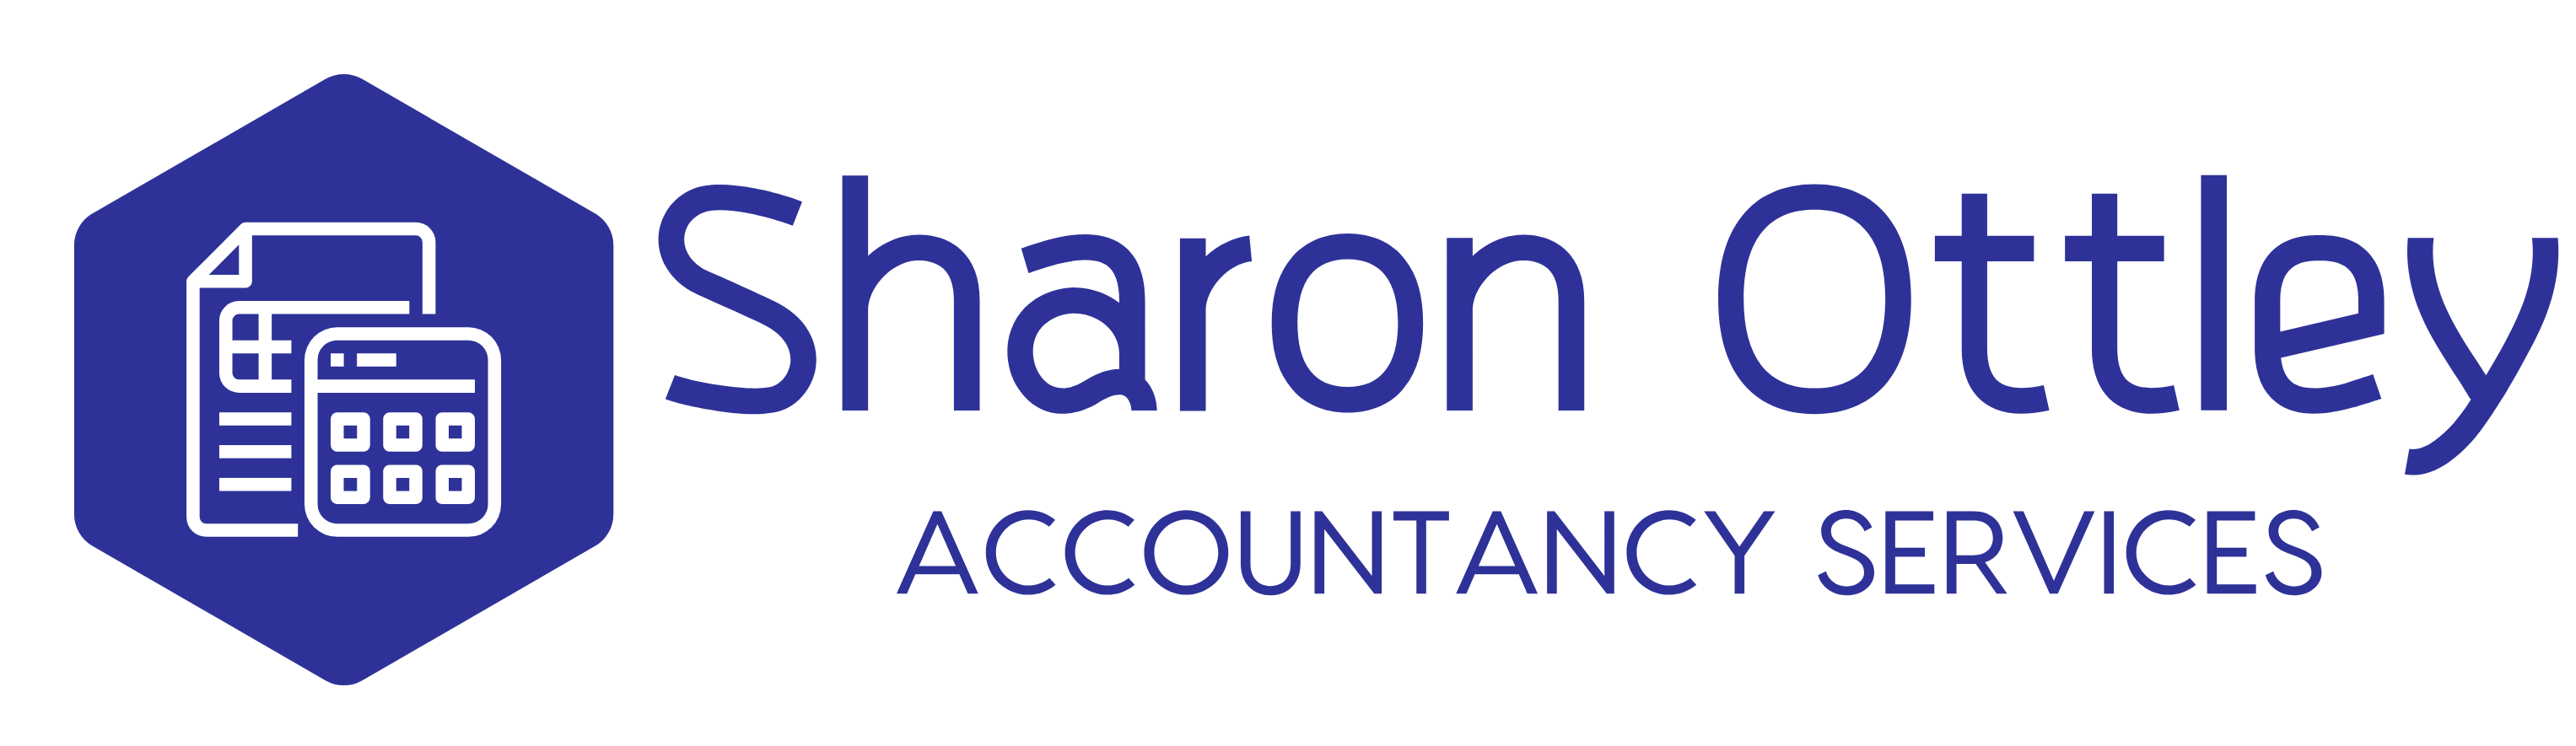 Sharon Ottley Accountancy Services Logo